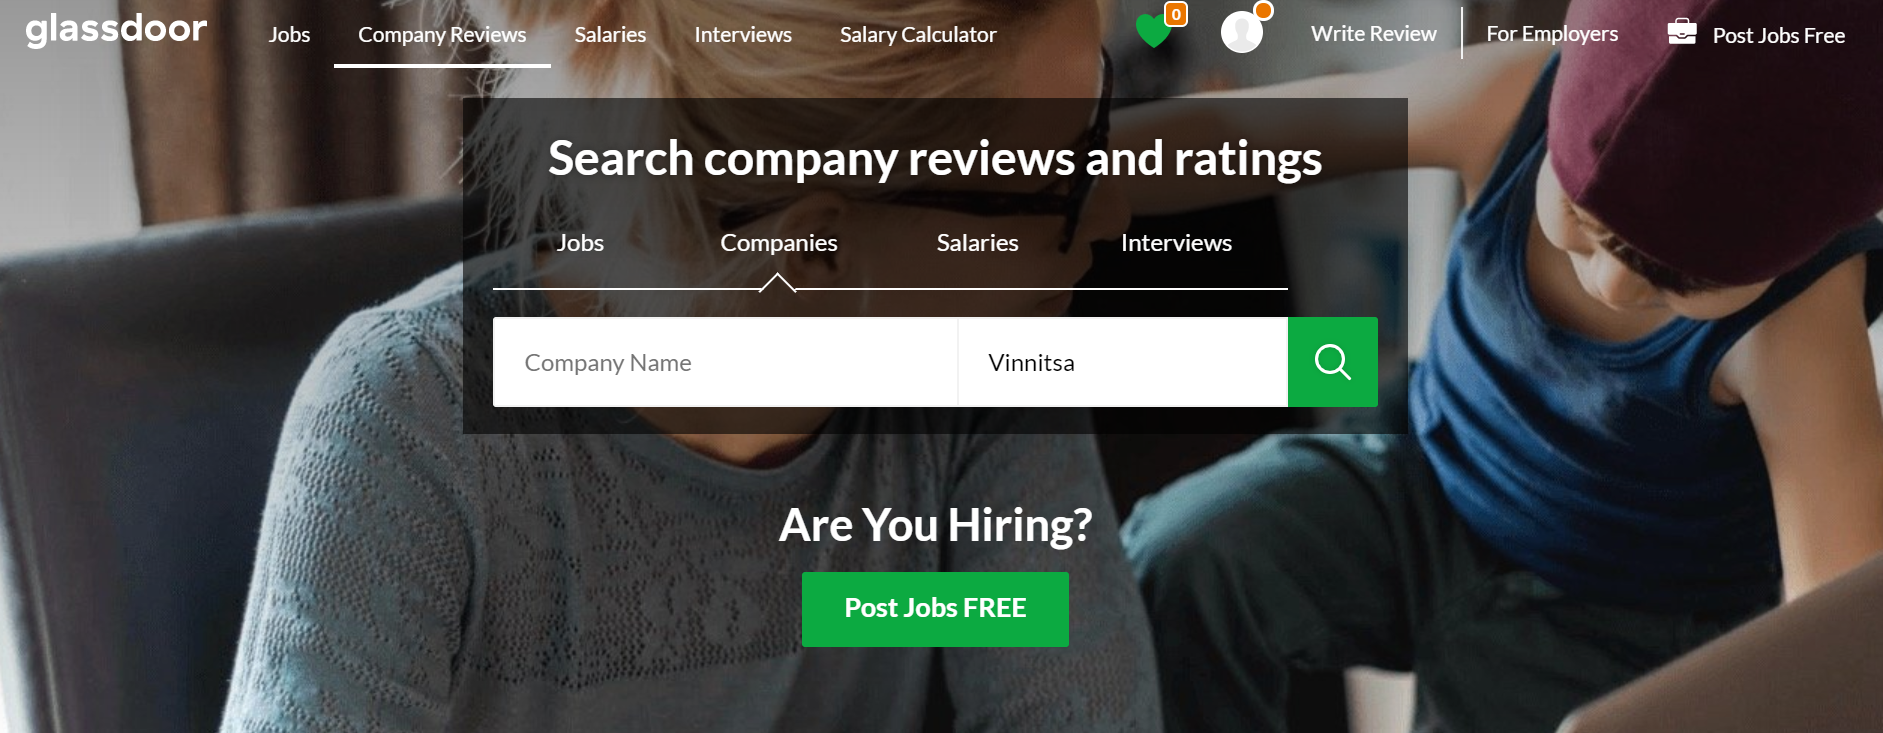 Cost to Build a Site Like Upwork Glassdoor.com